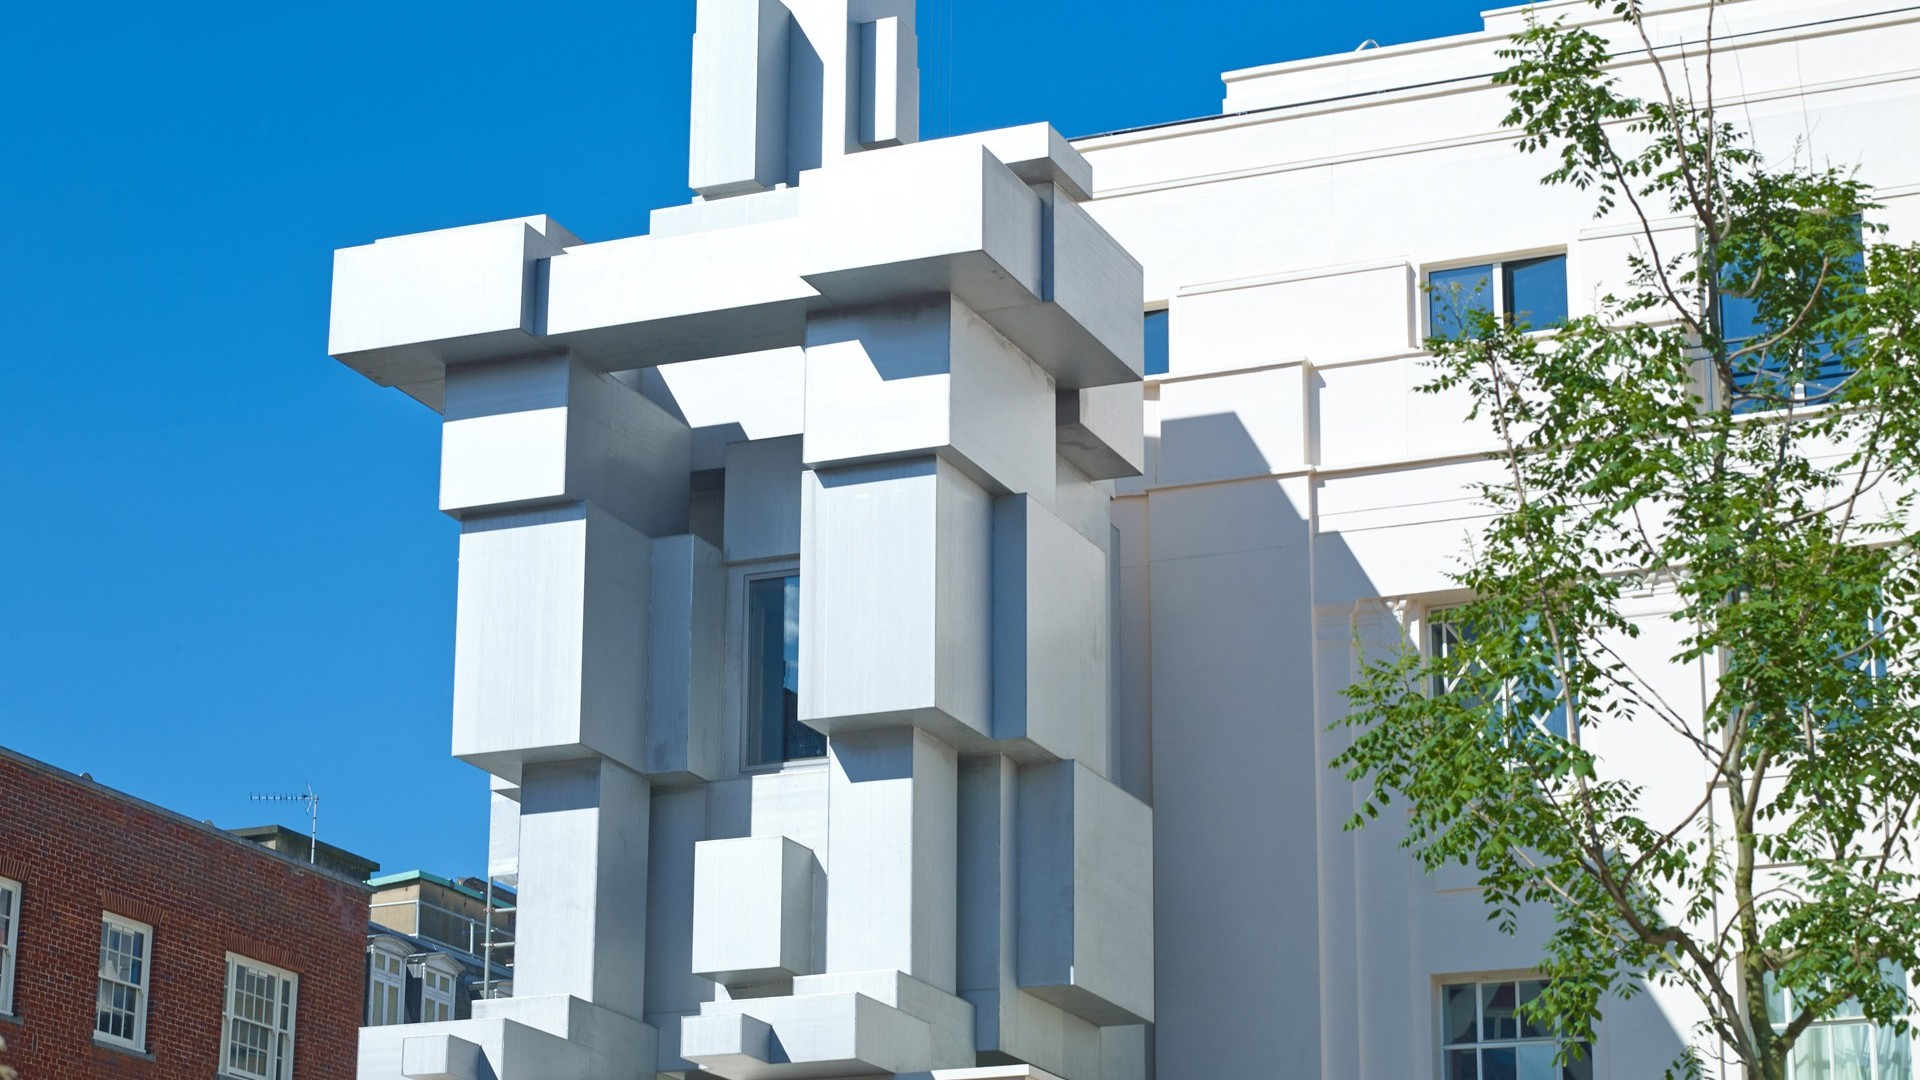 Beaumont Hotel, ROOM by Antony Gormley – London's best designer hotel suites